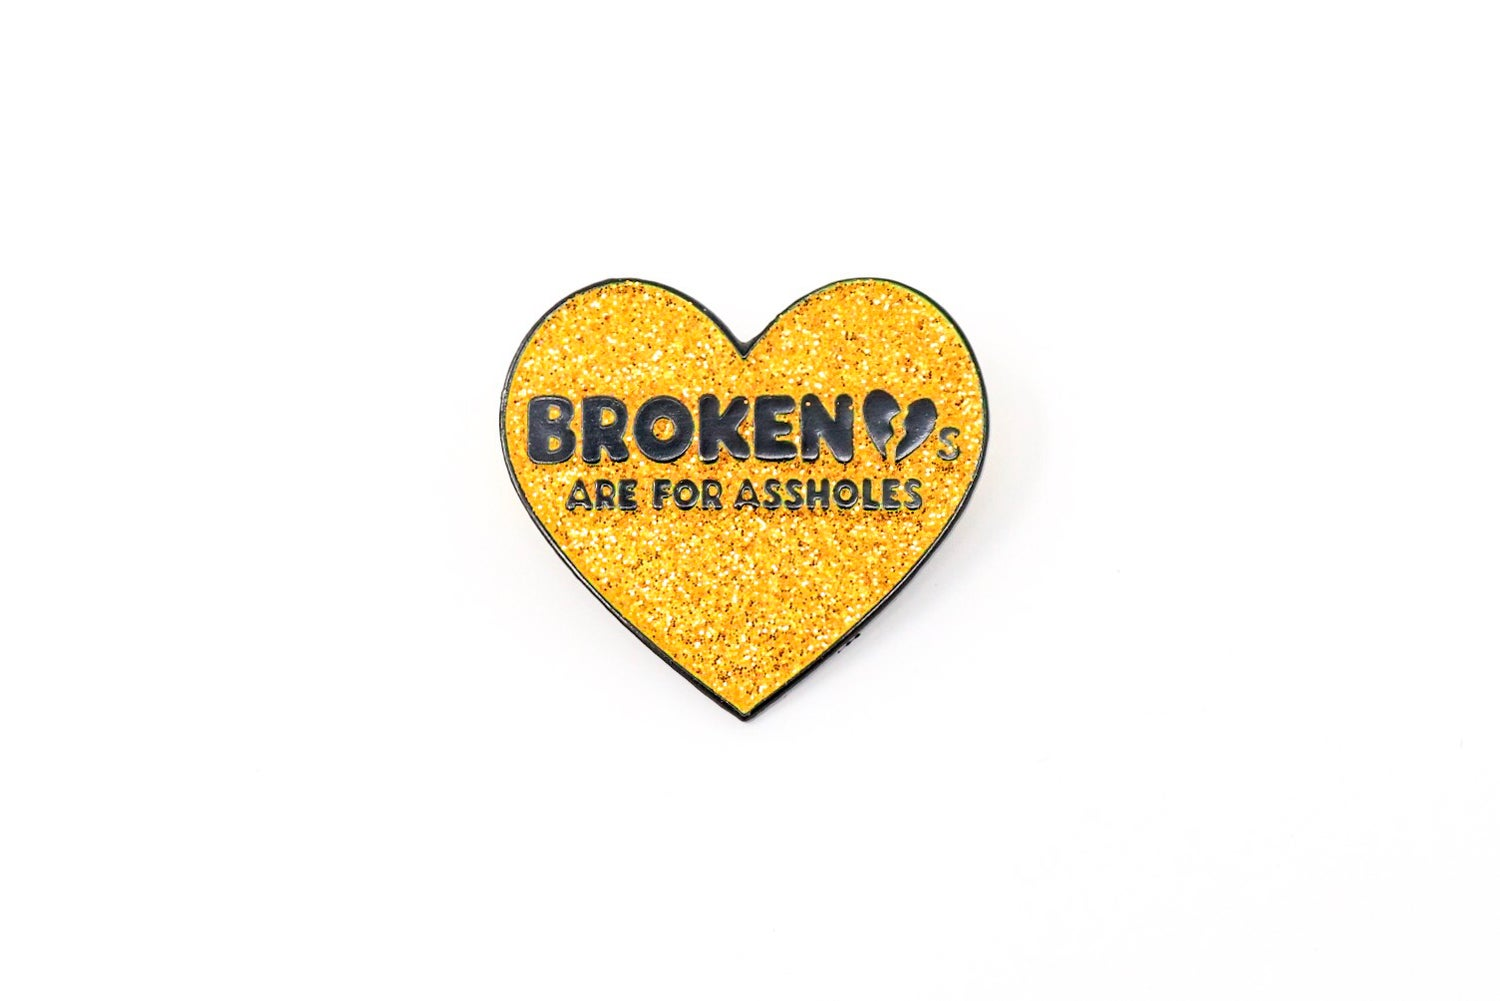 Image of Broken Hearts Are For Assholes